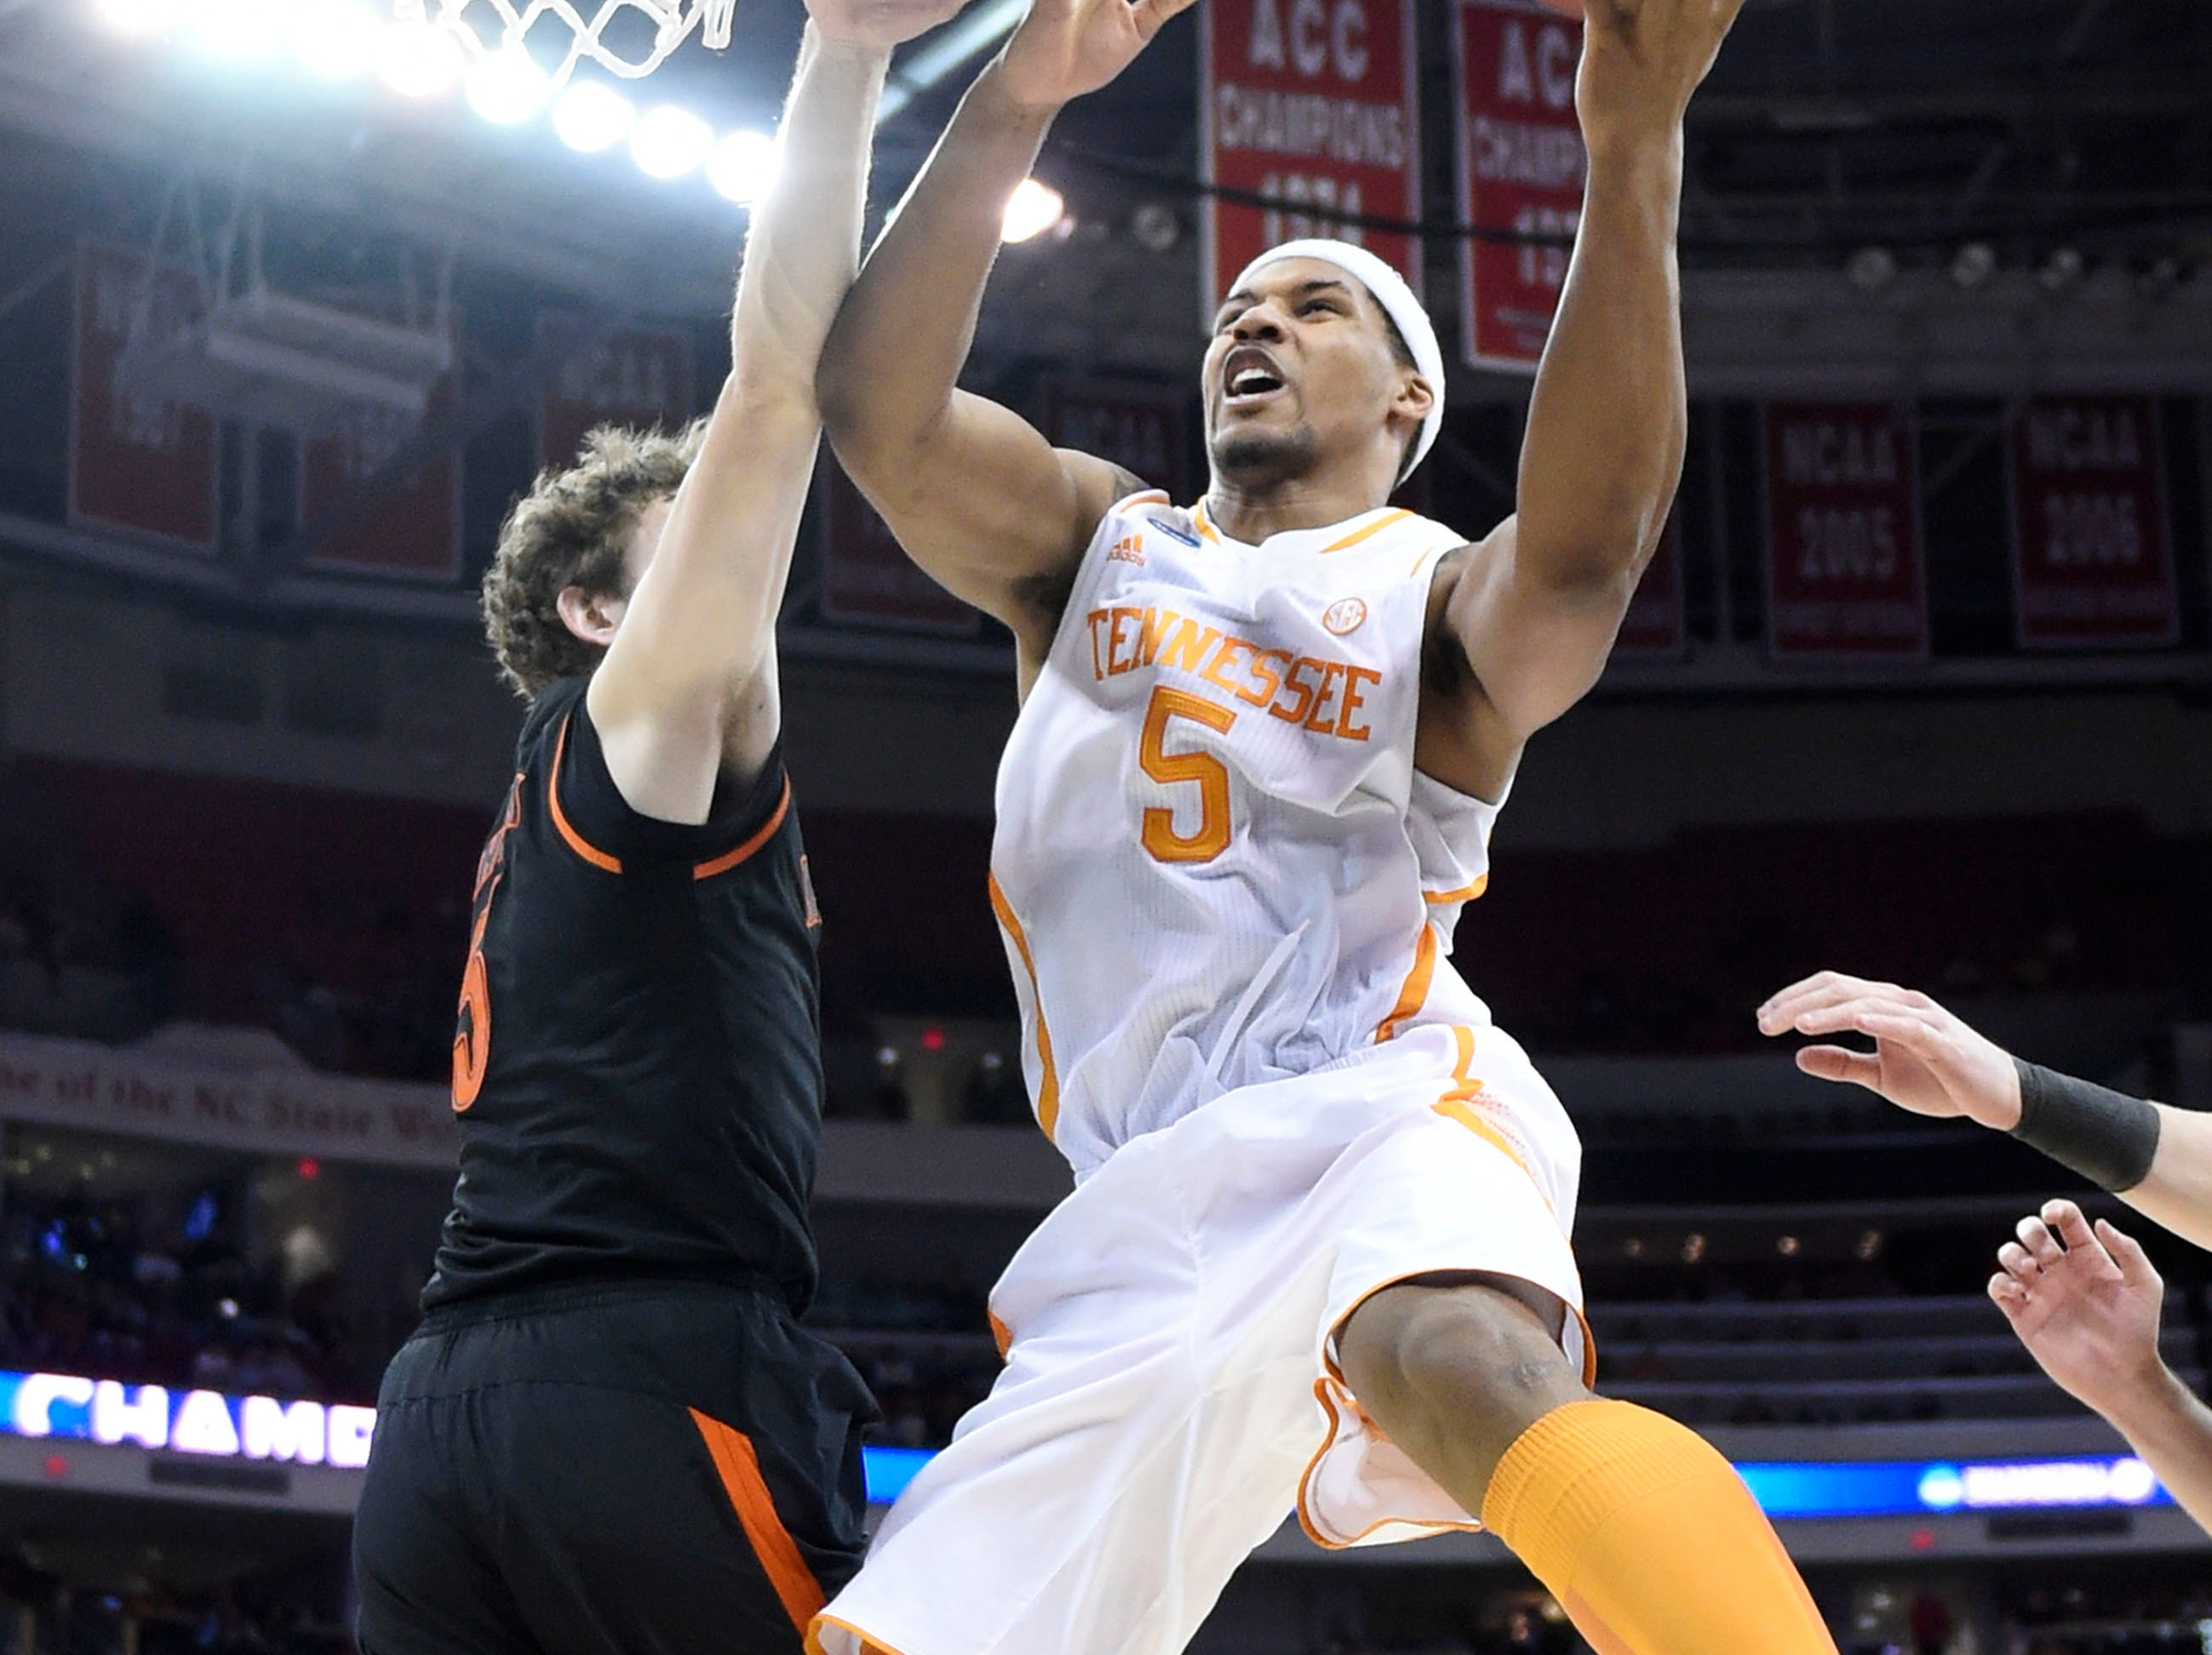 Tennessee forward Jarnell Stokes (5) goes to the hoop against Mercer defense during the first half of a third-round NCAA tournament game at the PNC Arena in Raleigh, N.C. on Sunday, March 23, 2014.